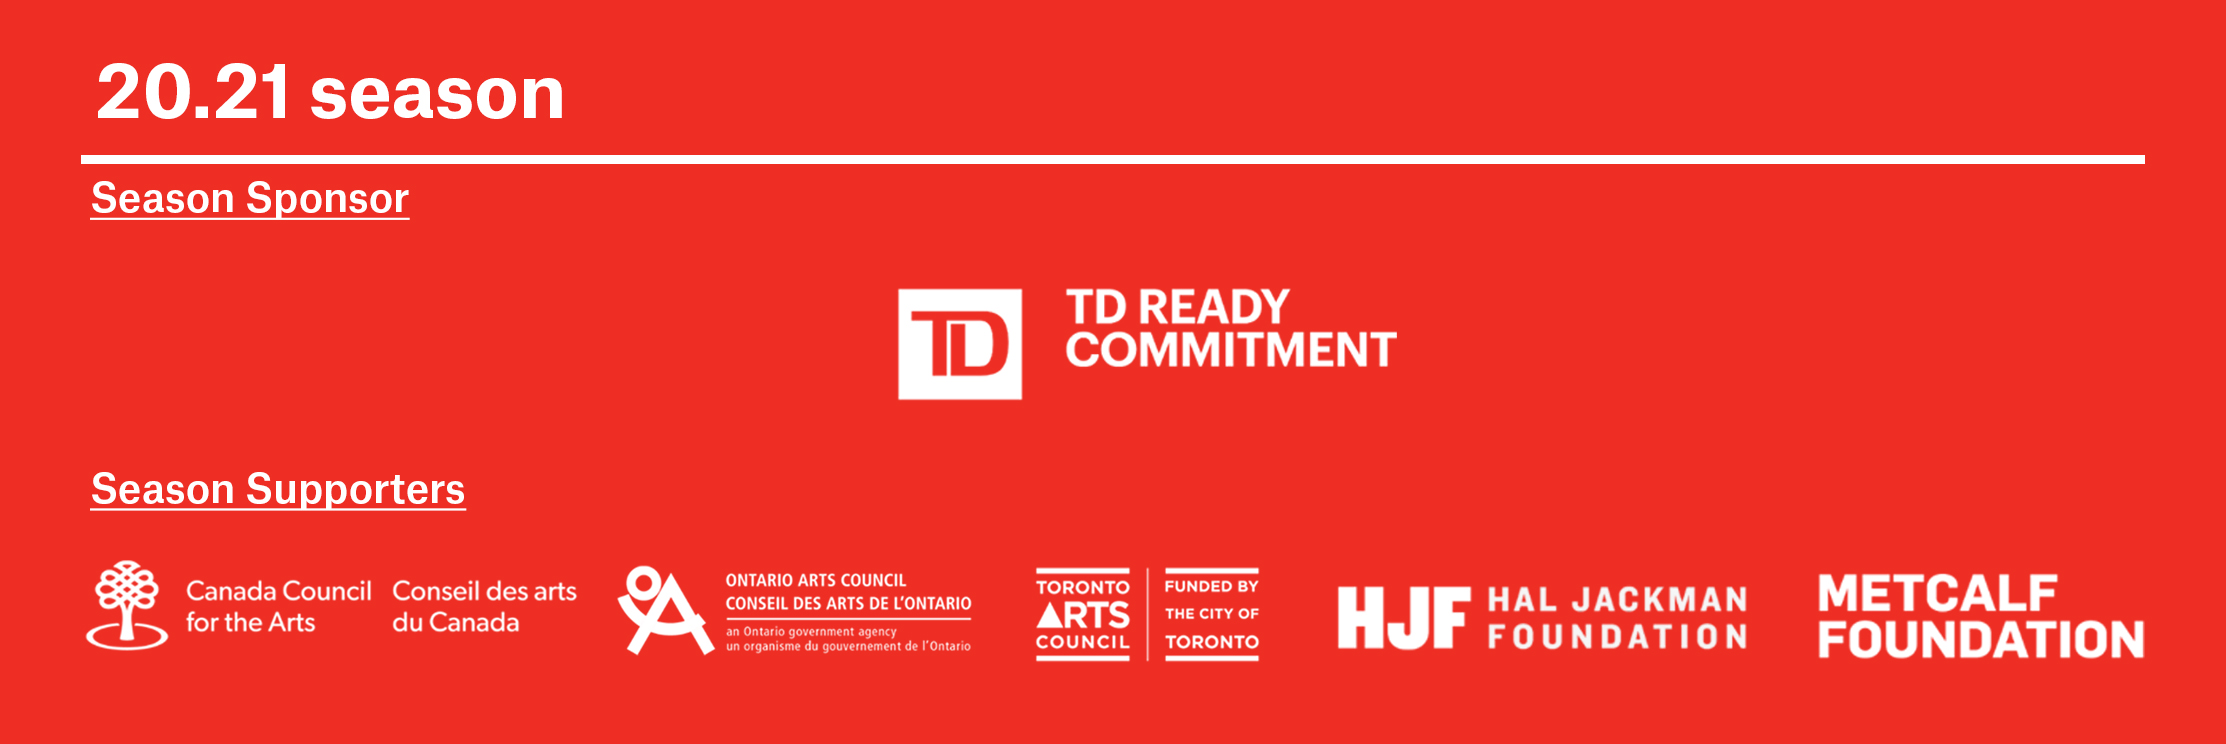 20.21 Sponsor TD Ready Commitment. Supporters Canada Council for the Arts, Toronto Arts Council, Ontario Arts Council, Hal Jackman Foundation, Metcalfe Foundation